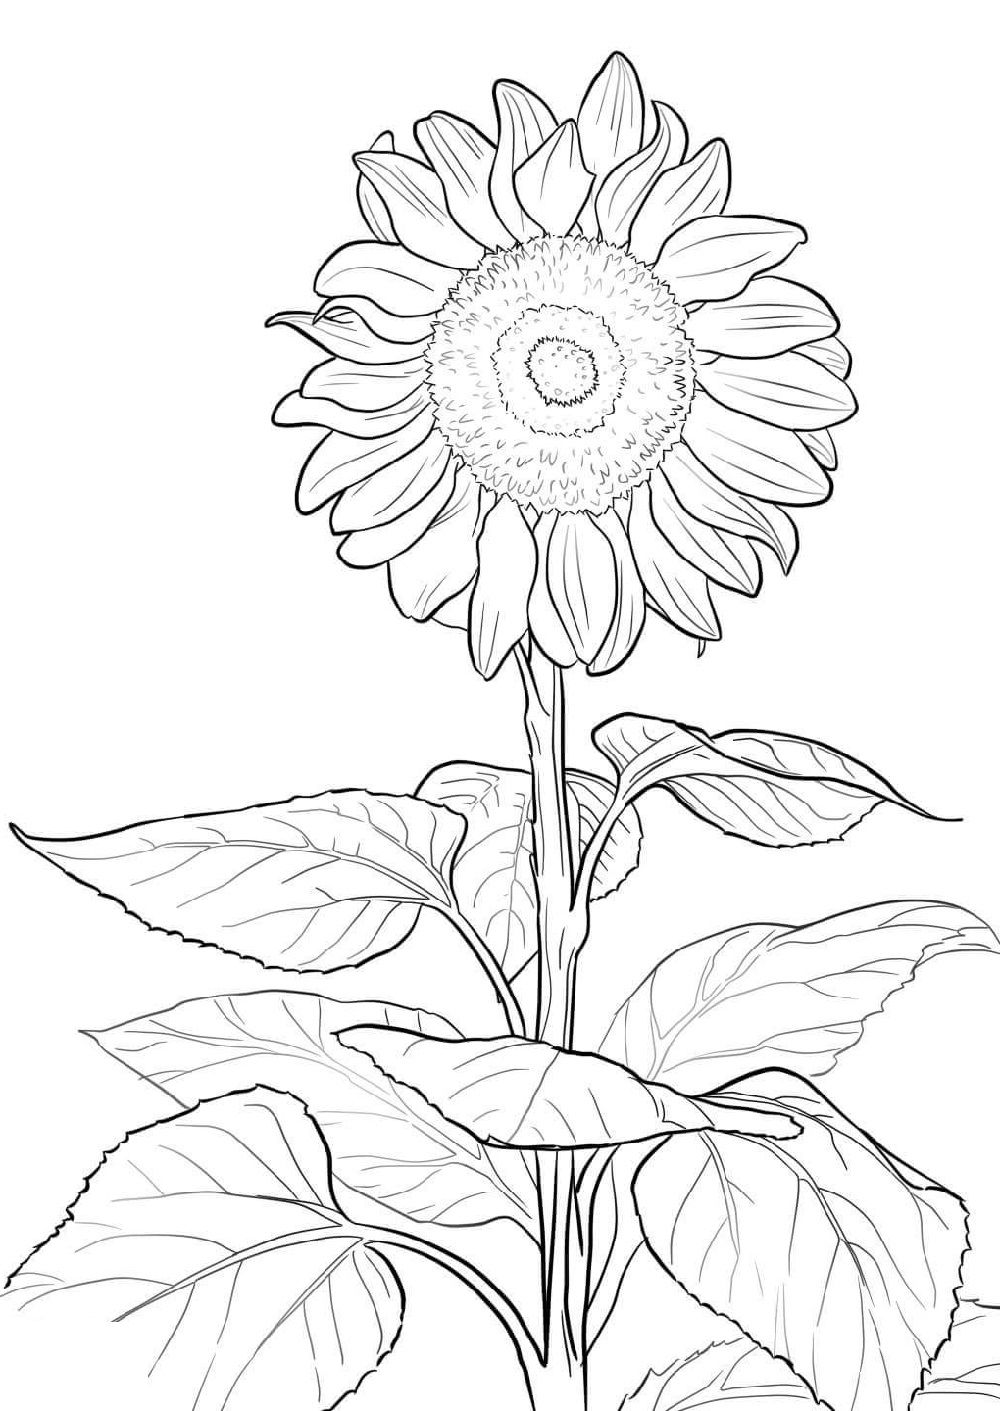 Sunflower Coloring Page for Preschoolers Sunflower